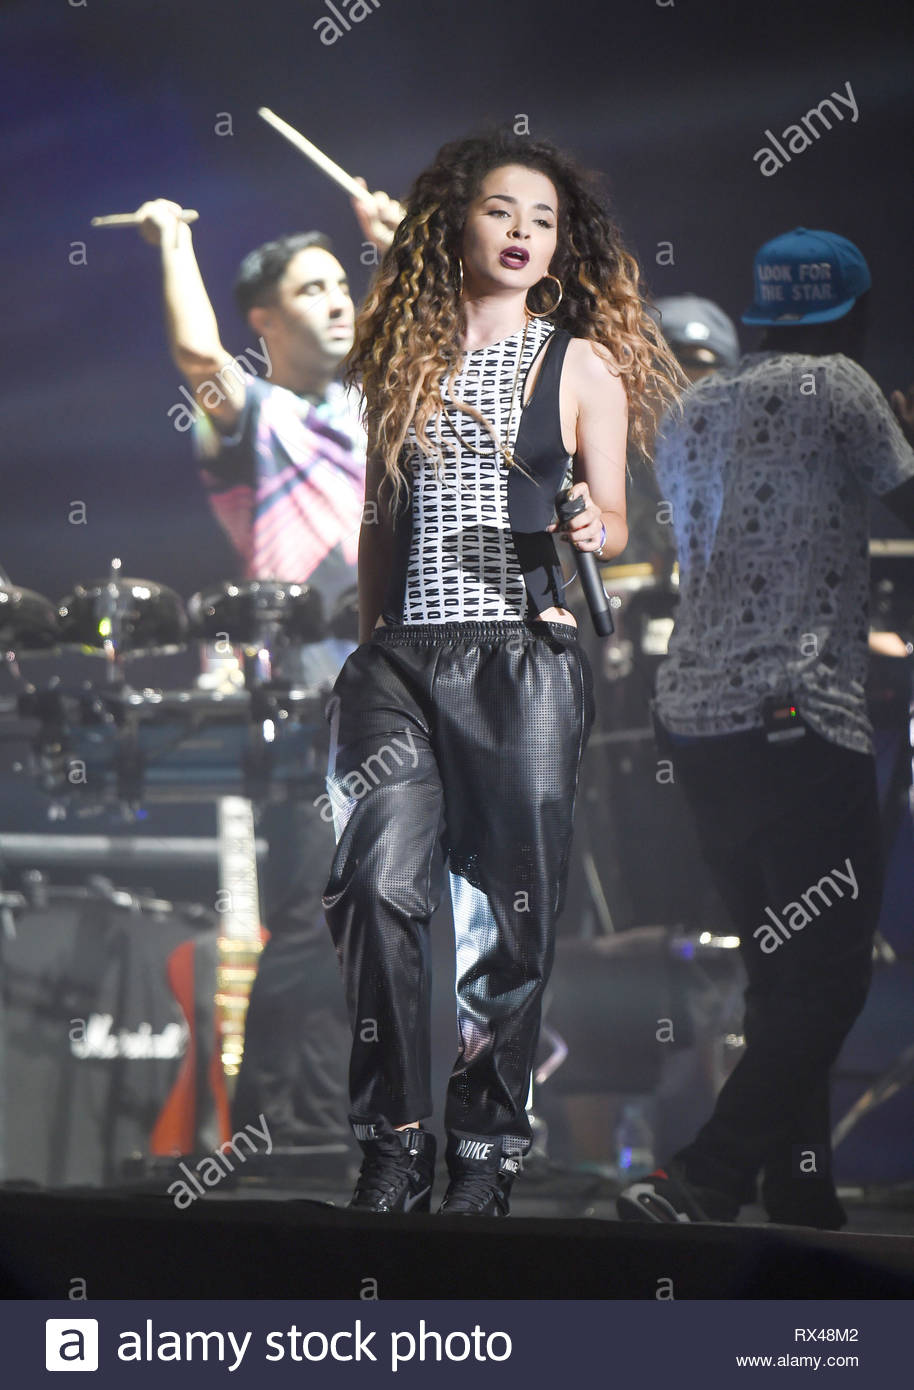 c35dc7b8b 4 Jul 2014 - BIRMINGHAM - UK ELLA EYRE JOINS RUDIMENTAL ON STAGE AT  WIRELESS FESTIVAL BIRMINGHAM BYLINE MUST READ   XPOSUREPHOTOS.